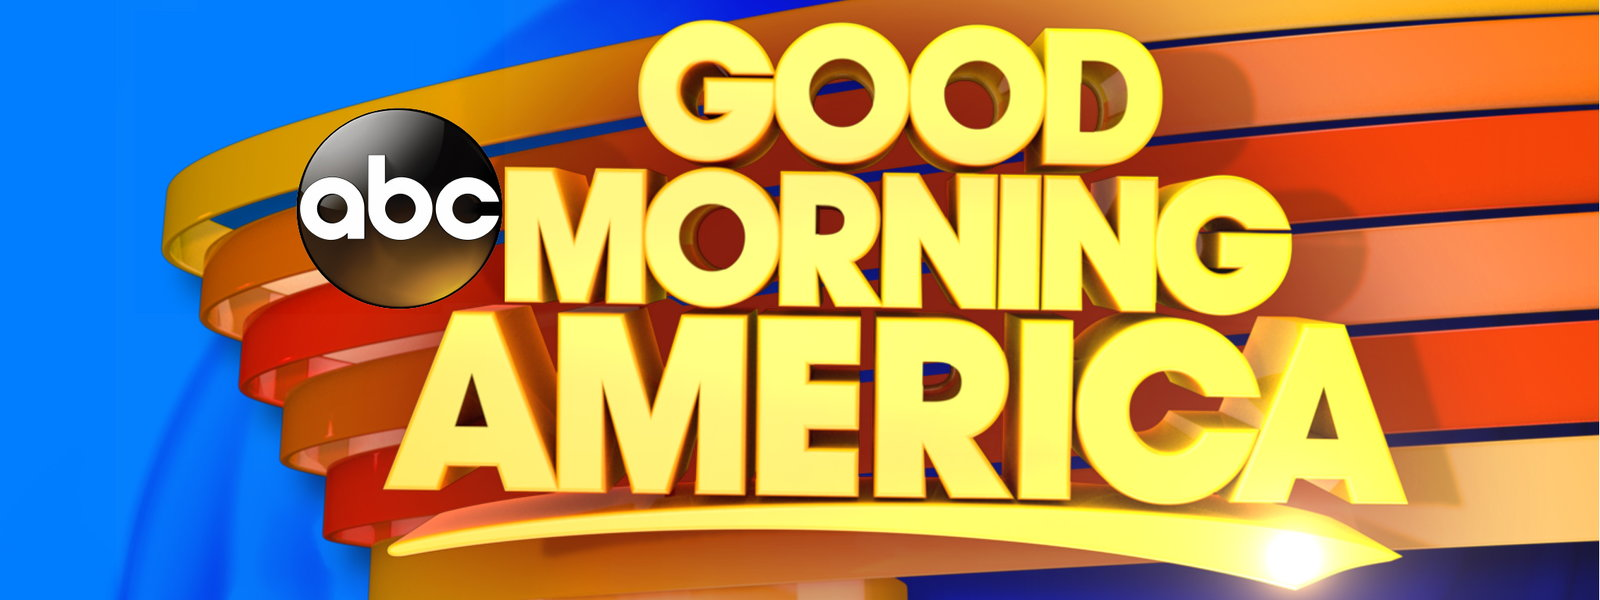 Lisa Liberatore, MD FACS On Good Morning America